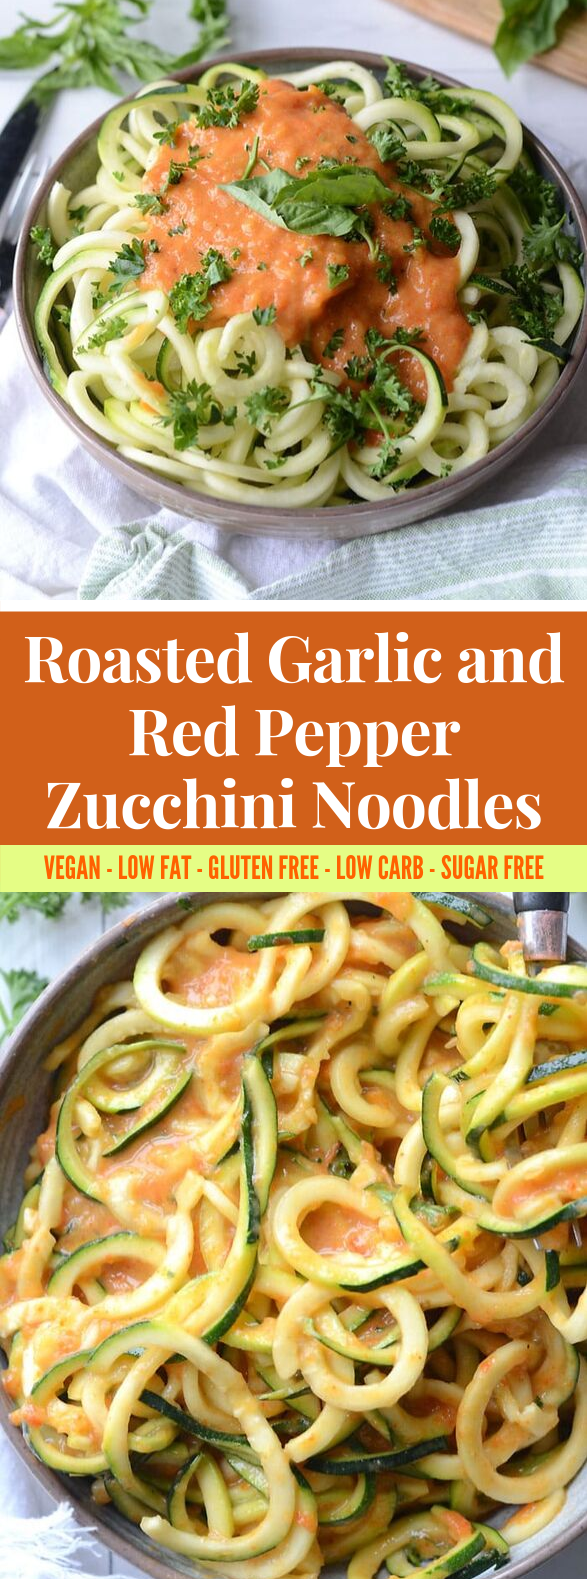 ROASTED GARLIC AND RED PEPPER ZOODLES #vegan #lowcalorie